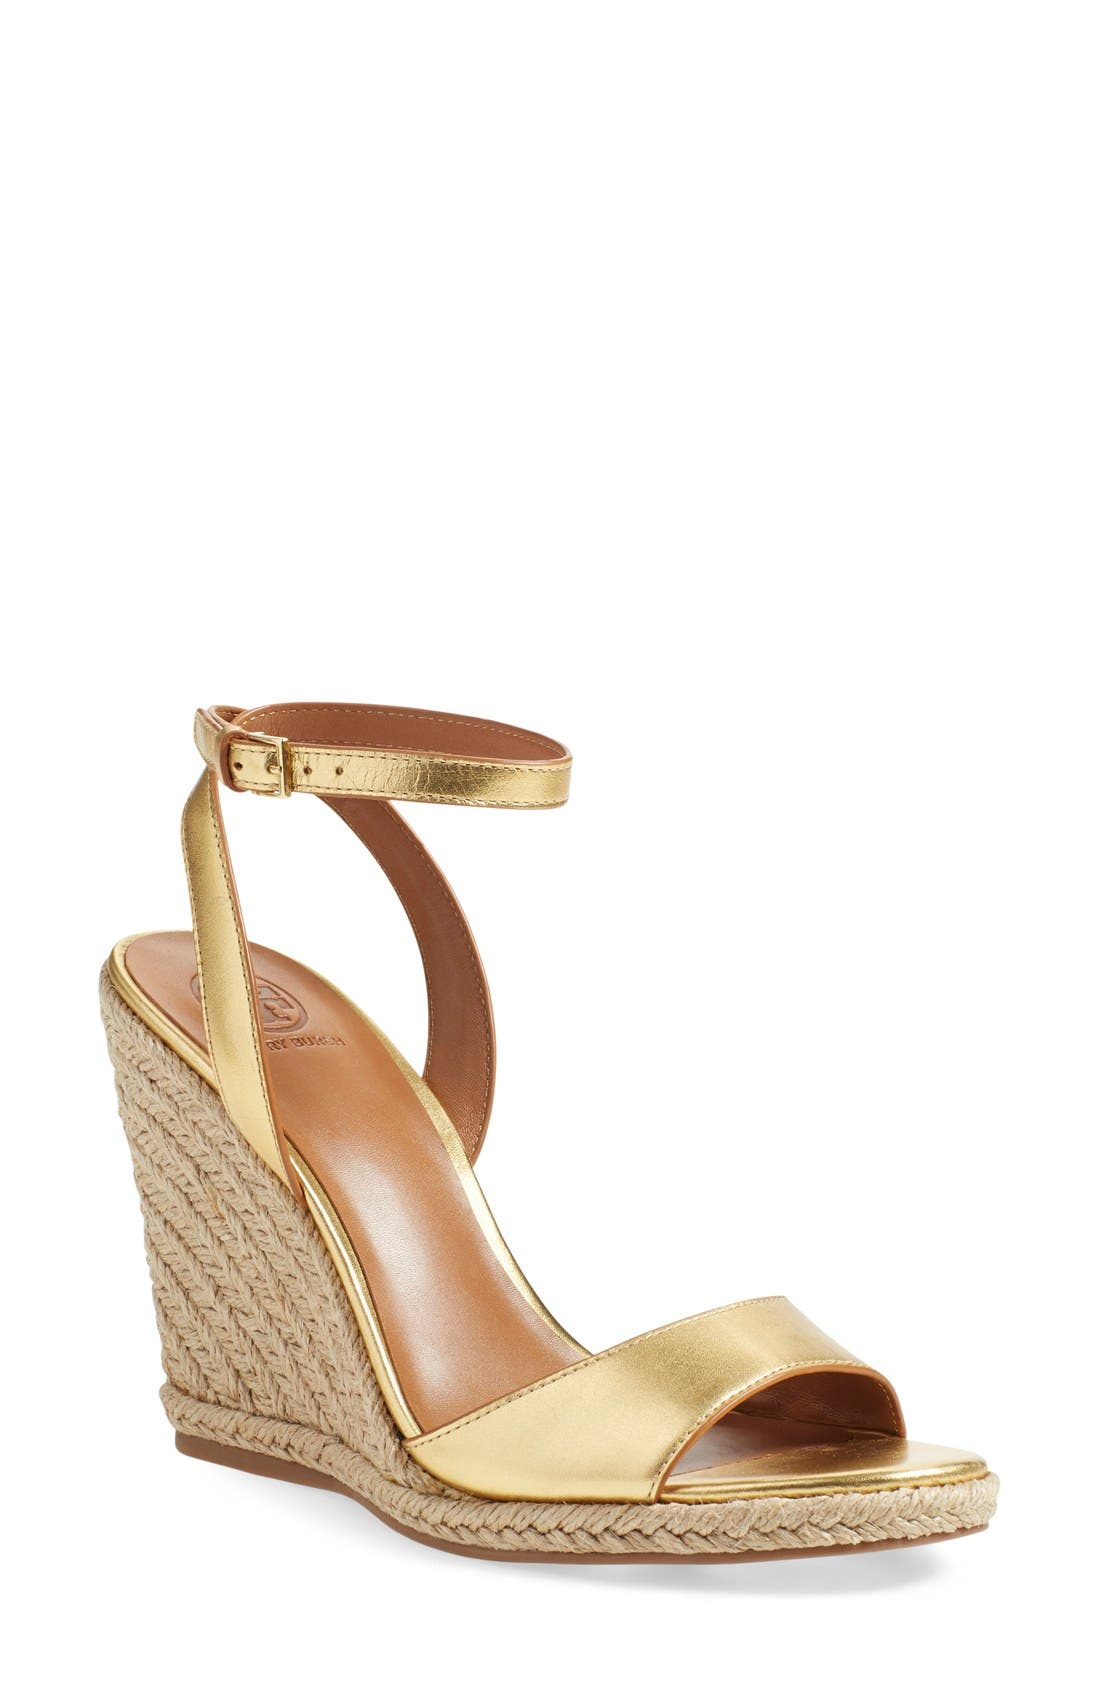 Wedge Sandal,                         Main,                         color, Gold